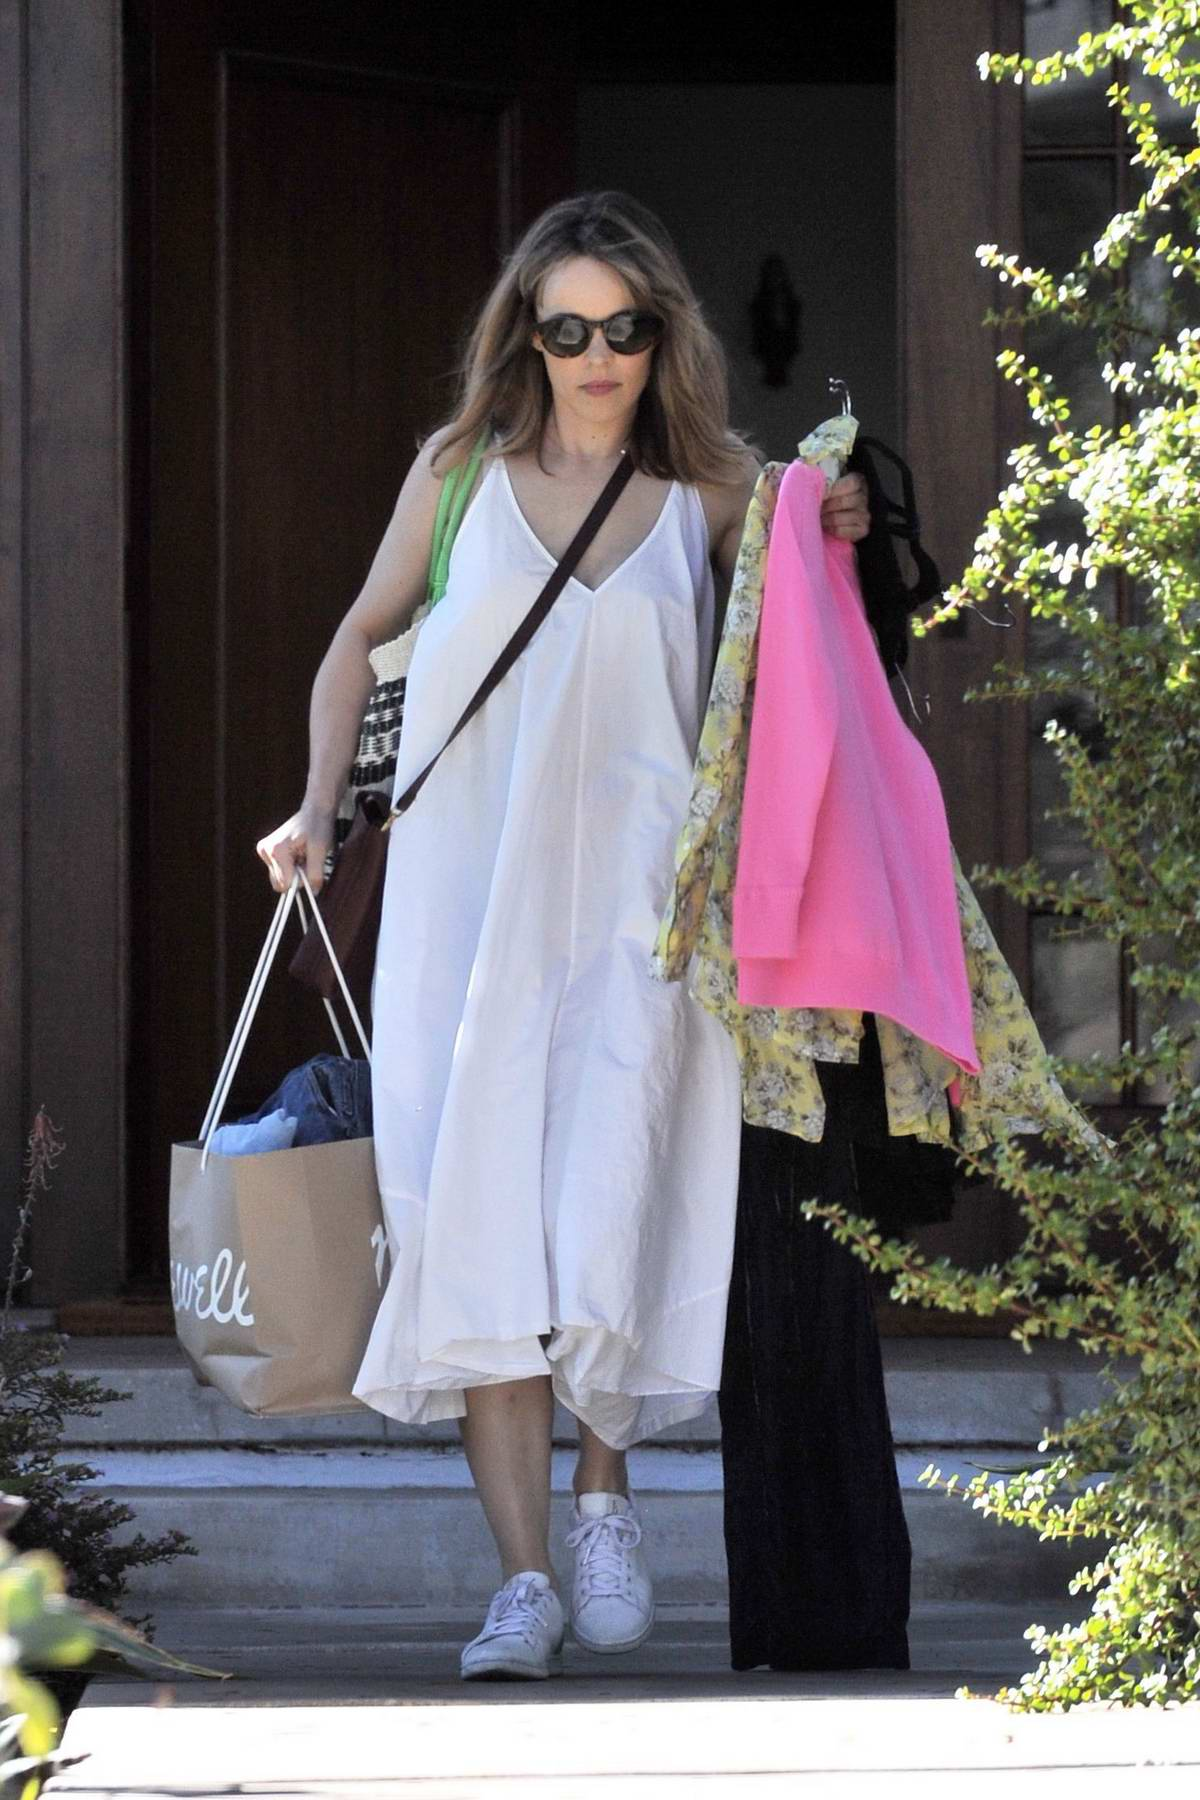 Rachel Mcadams Spotted Carrying Ping Bags And Clothes As She Heads Out Wearing A White Sundress Sneakers In Los Angeles